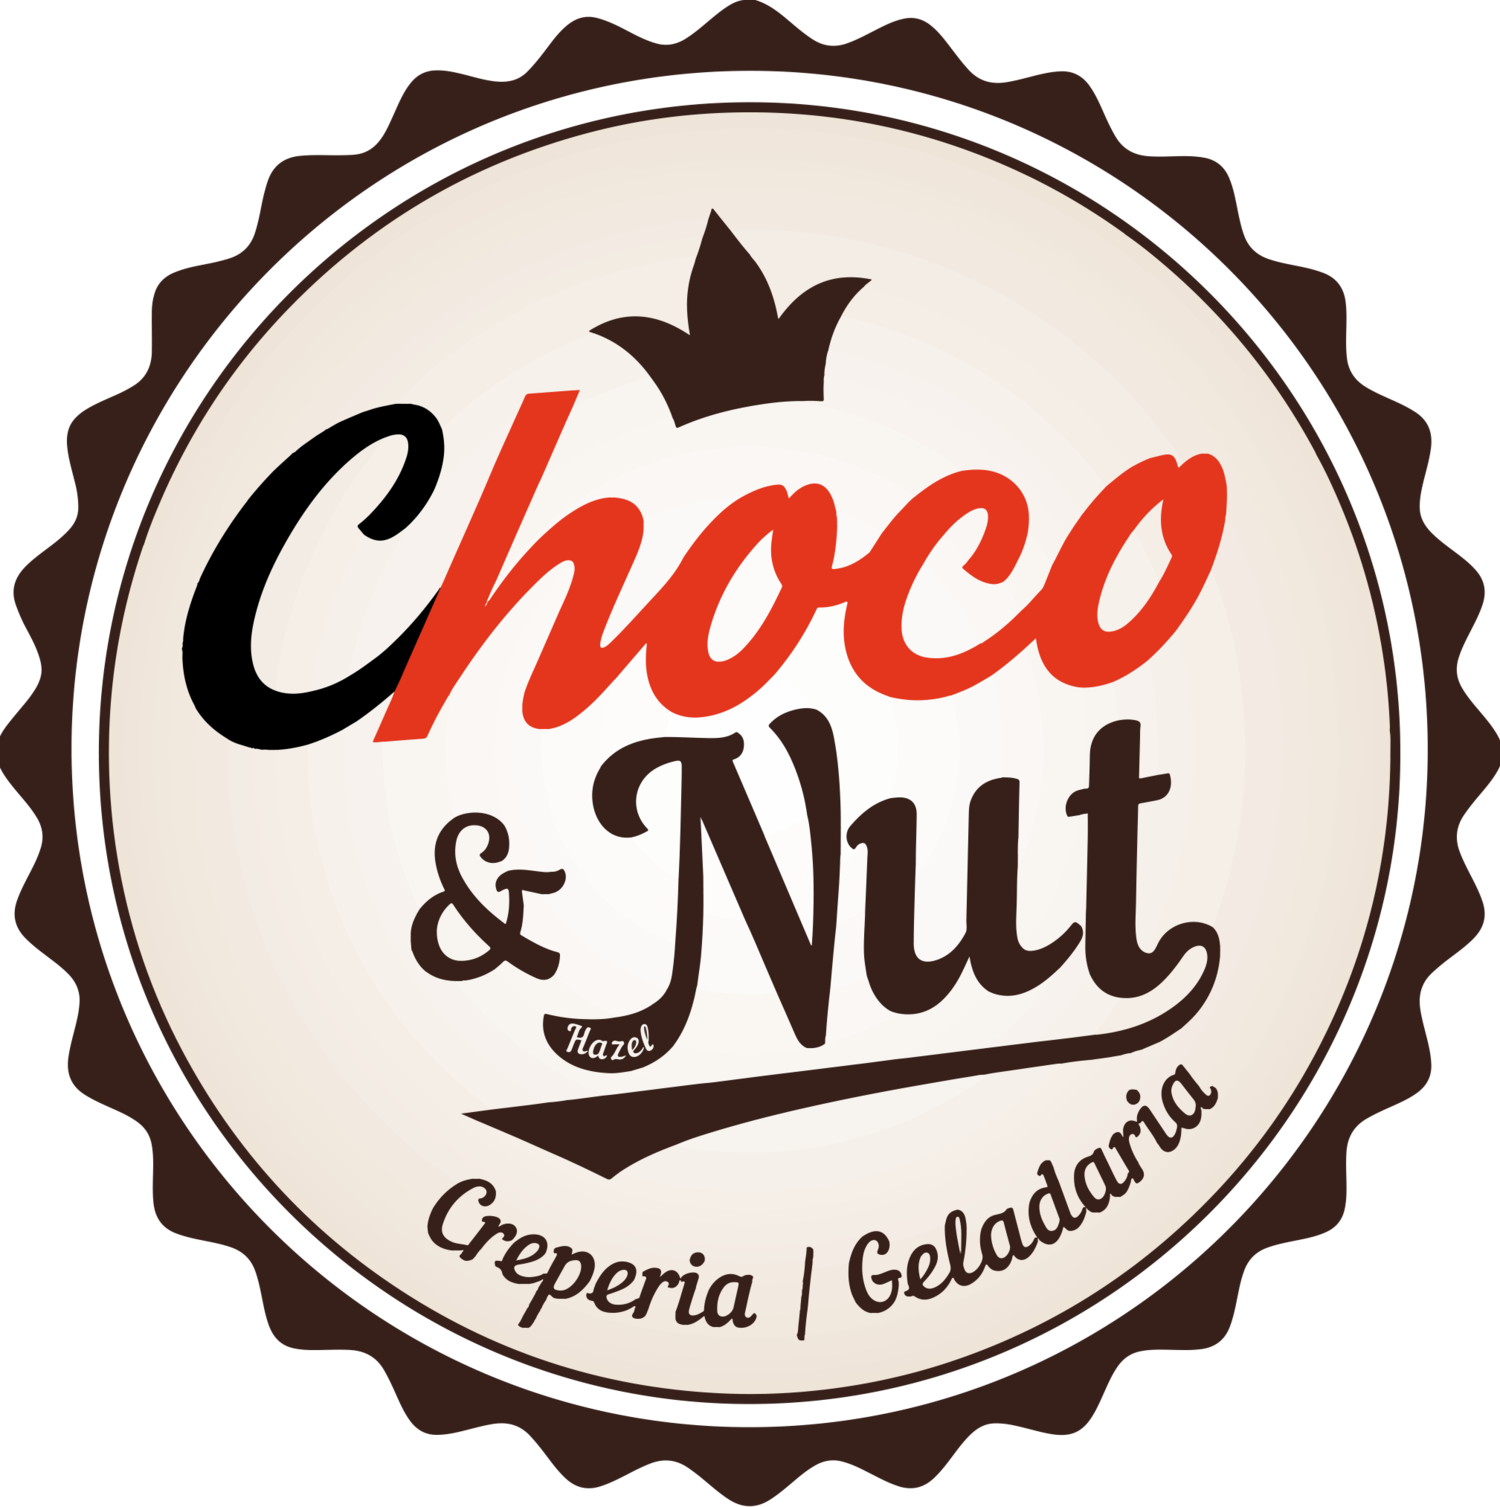 Choco&Nut